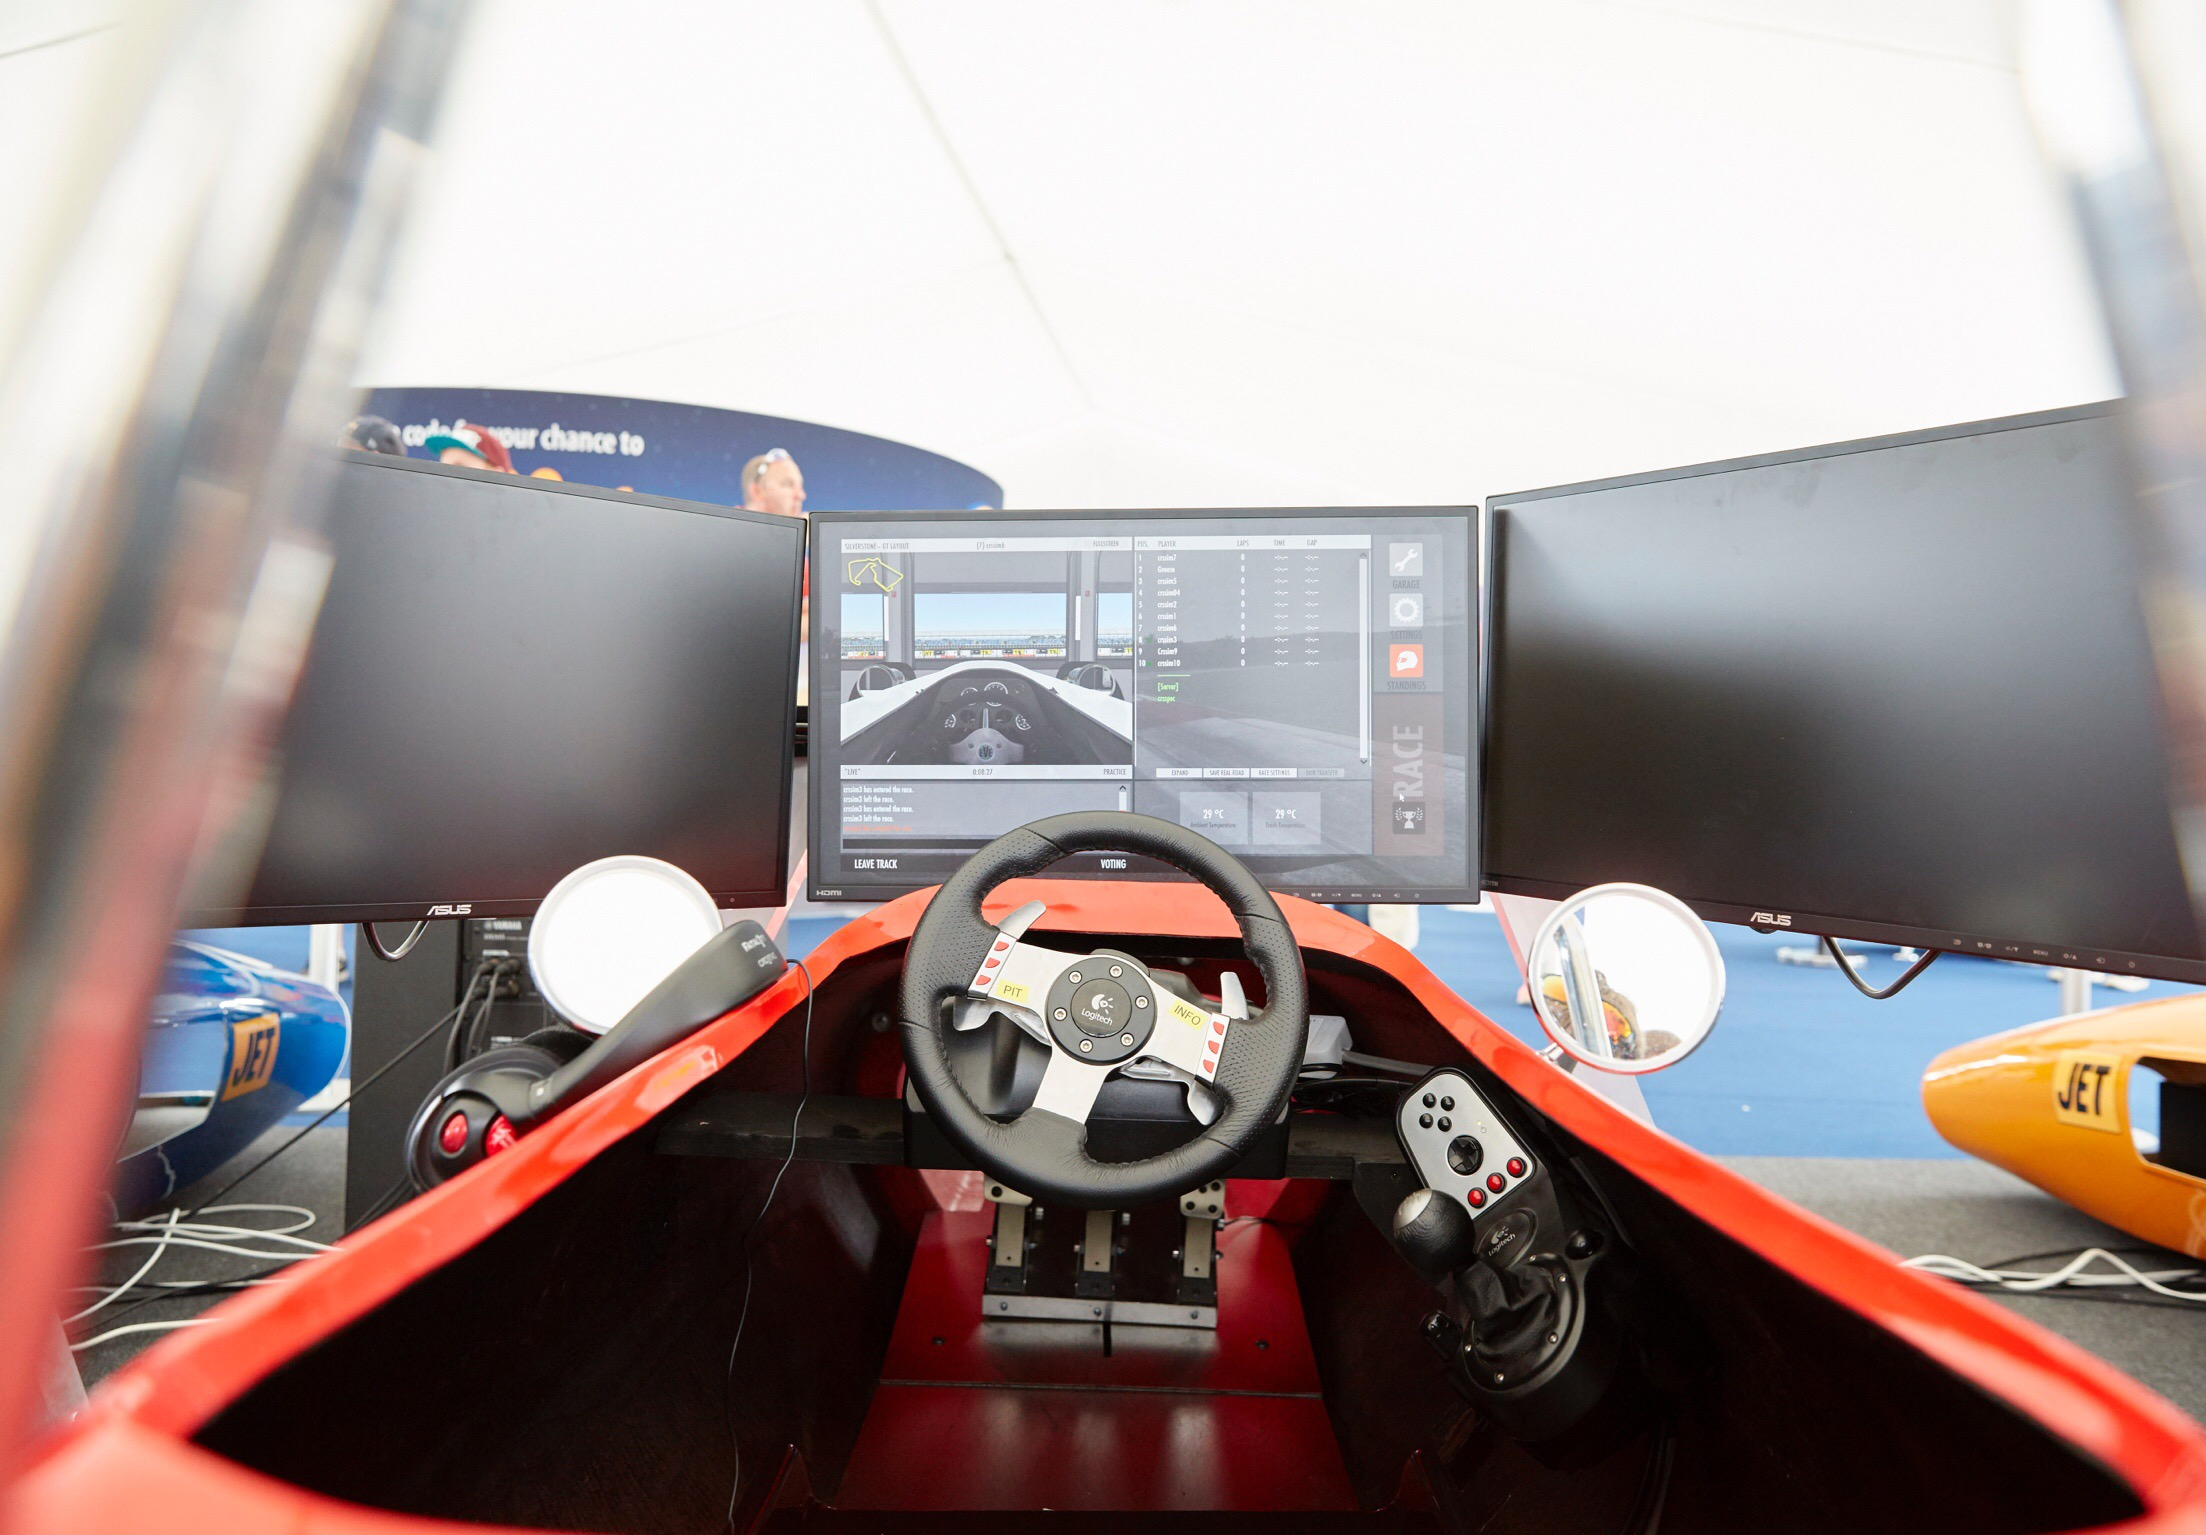 Get your own Classic Race Simulator! - If your lucky enough to have a custom made racing simulator in your home or venue, you've come to the right place! With an array of options available, we can custom build any simulator to fit your requirements & specifications. With built in state of the art software & a user friendly setup, this is the elite level of simulator racing.